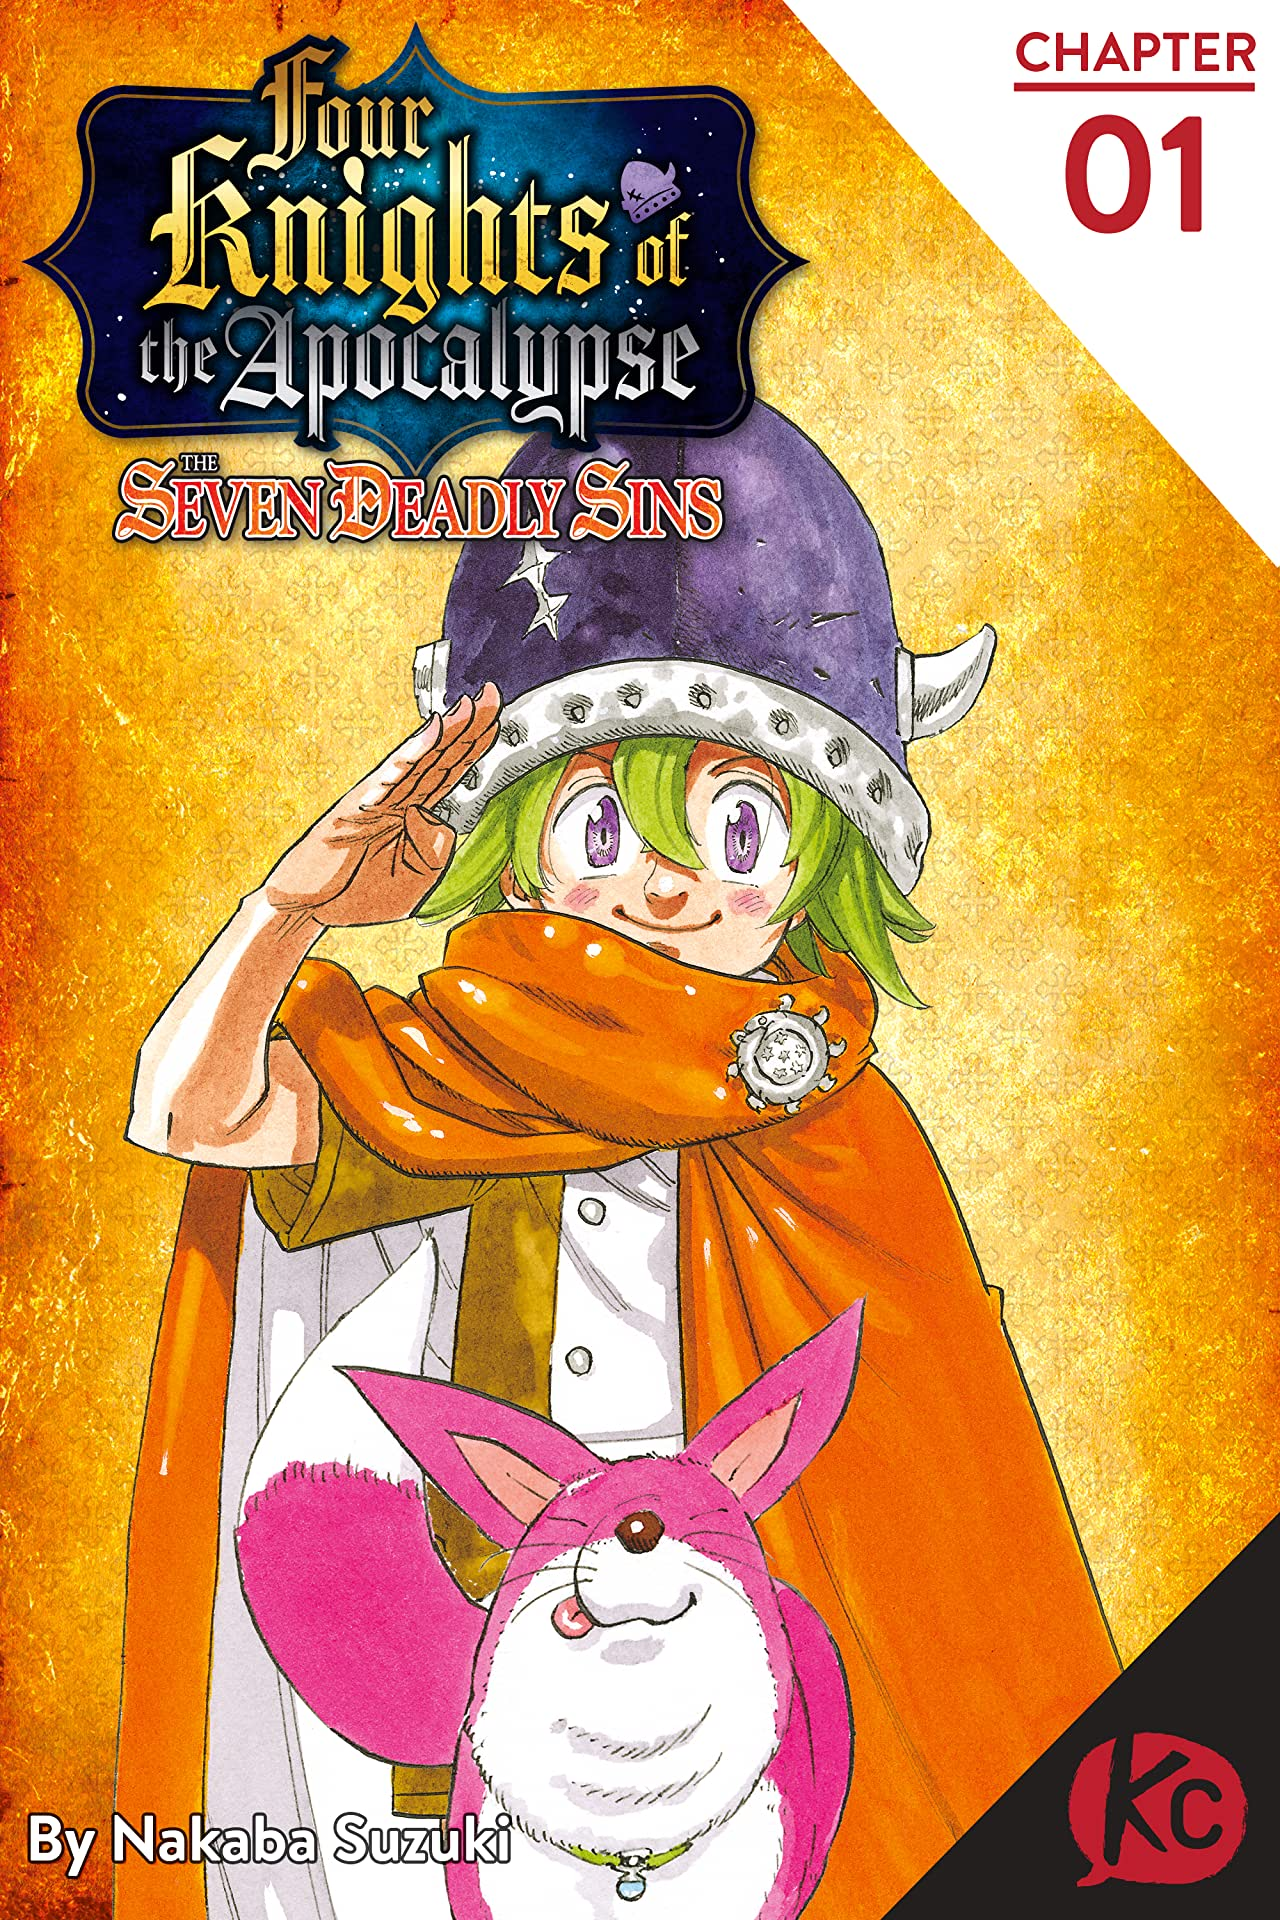 The Seven Deadly Sins: Four Knights of the Apocalypse #1